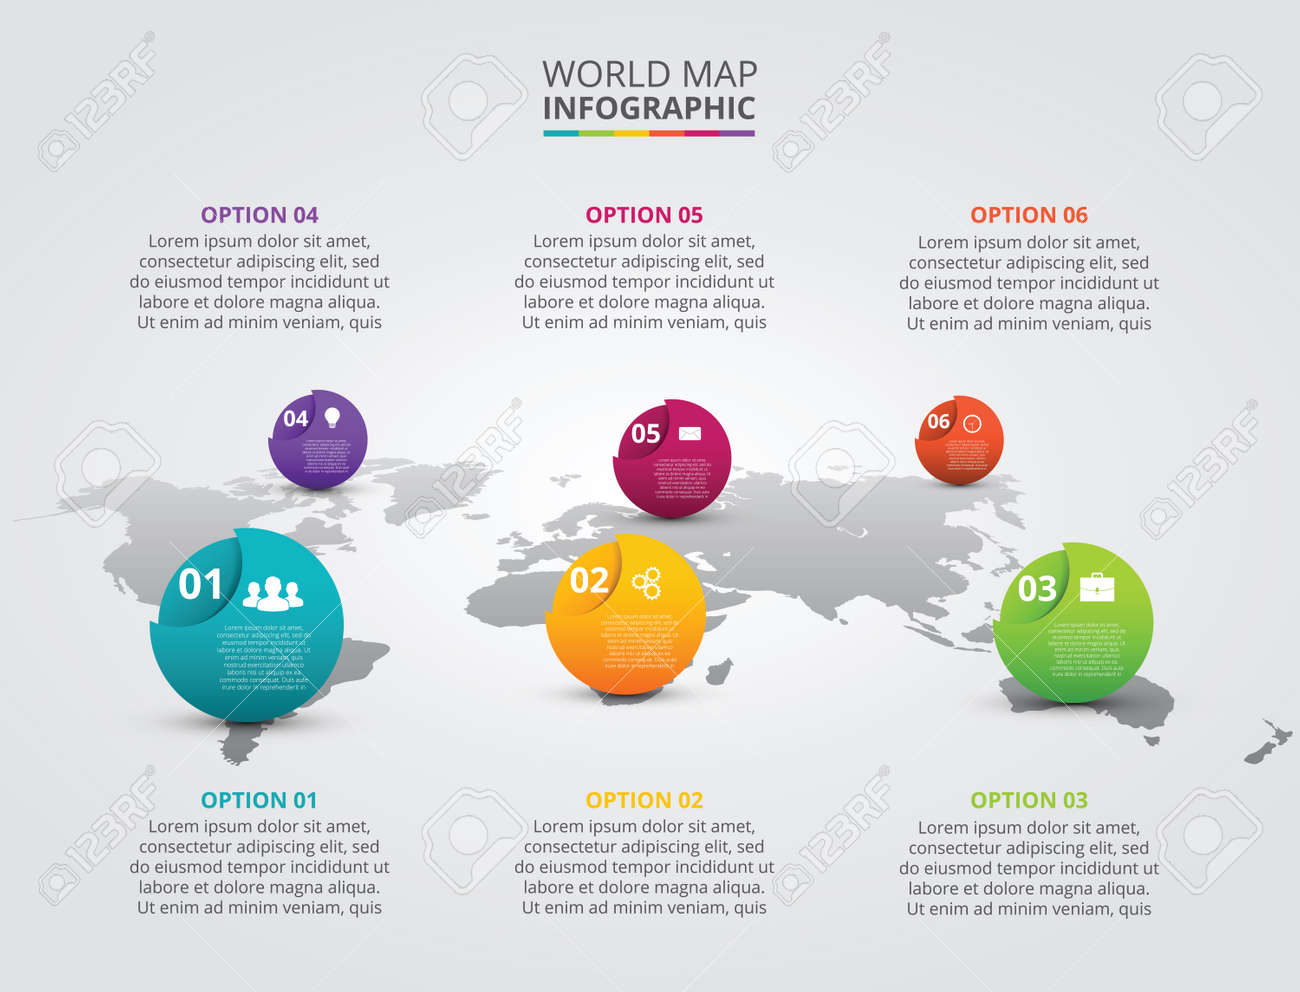 Vector world map with infographic elements template for diagram vector world map with infographic elements template for diagram graph presentation business gumiabroncs Image collections